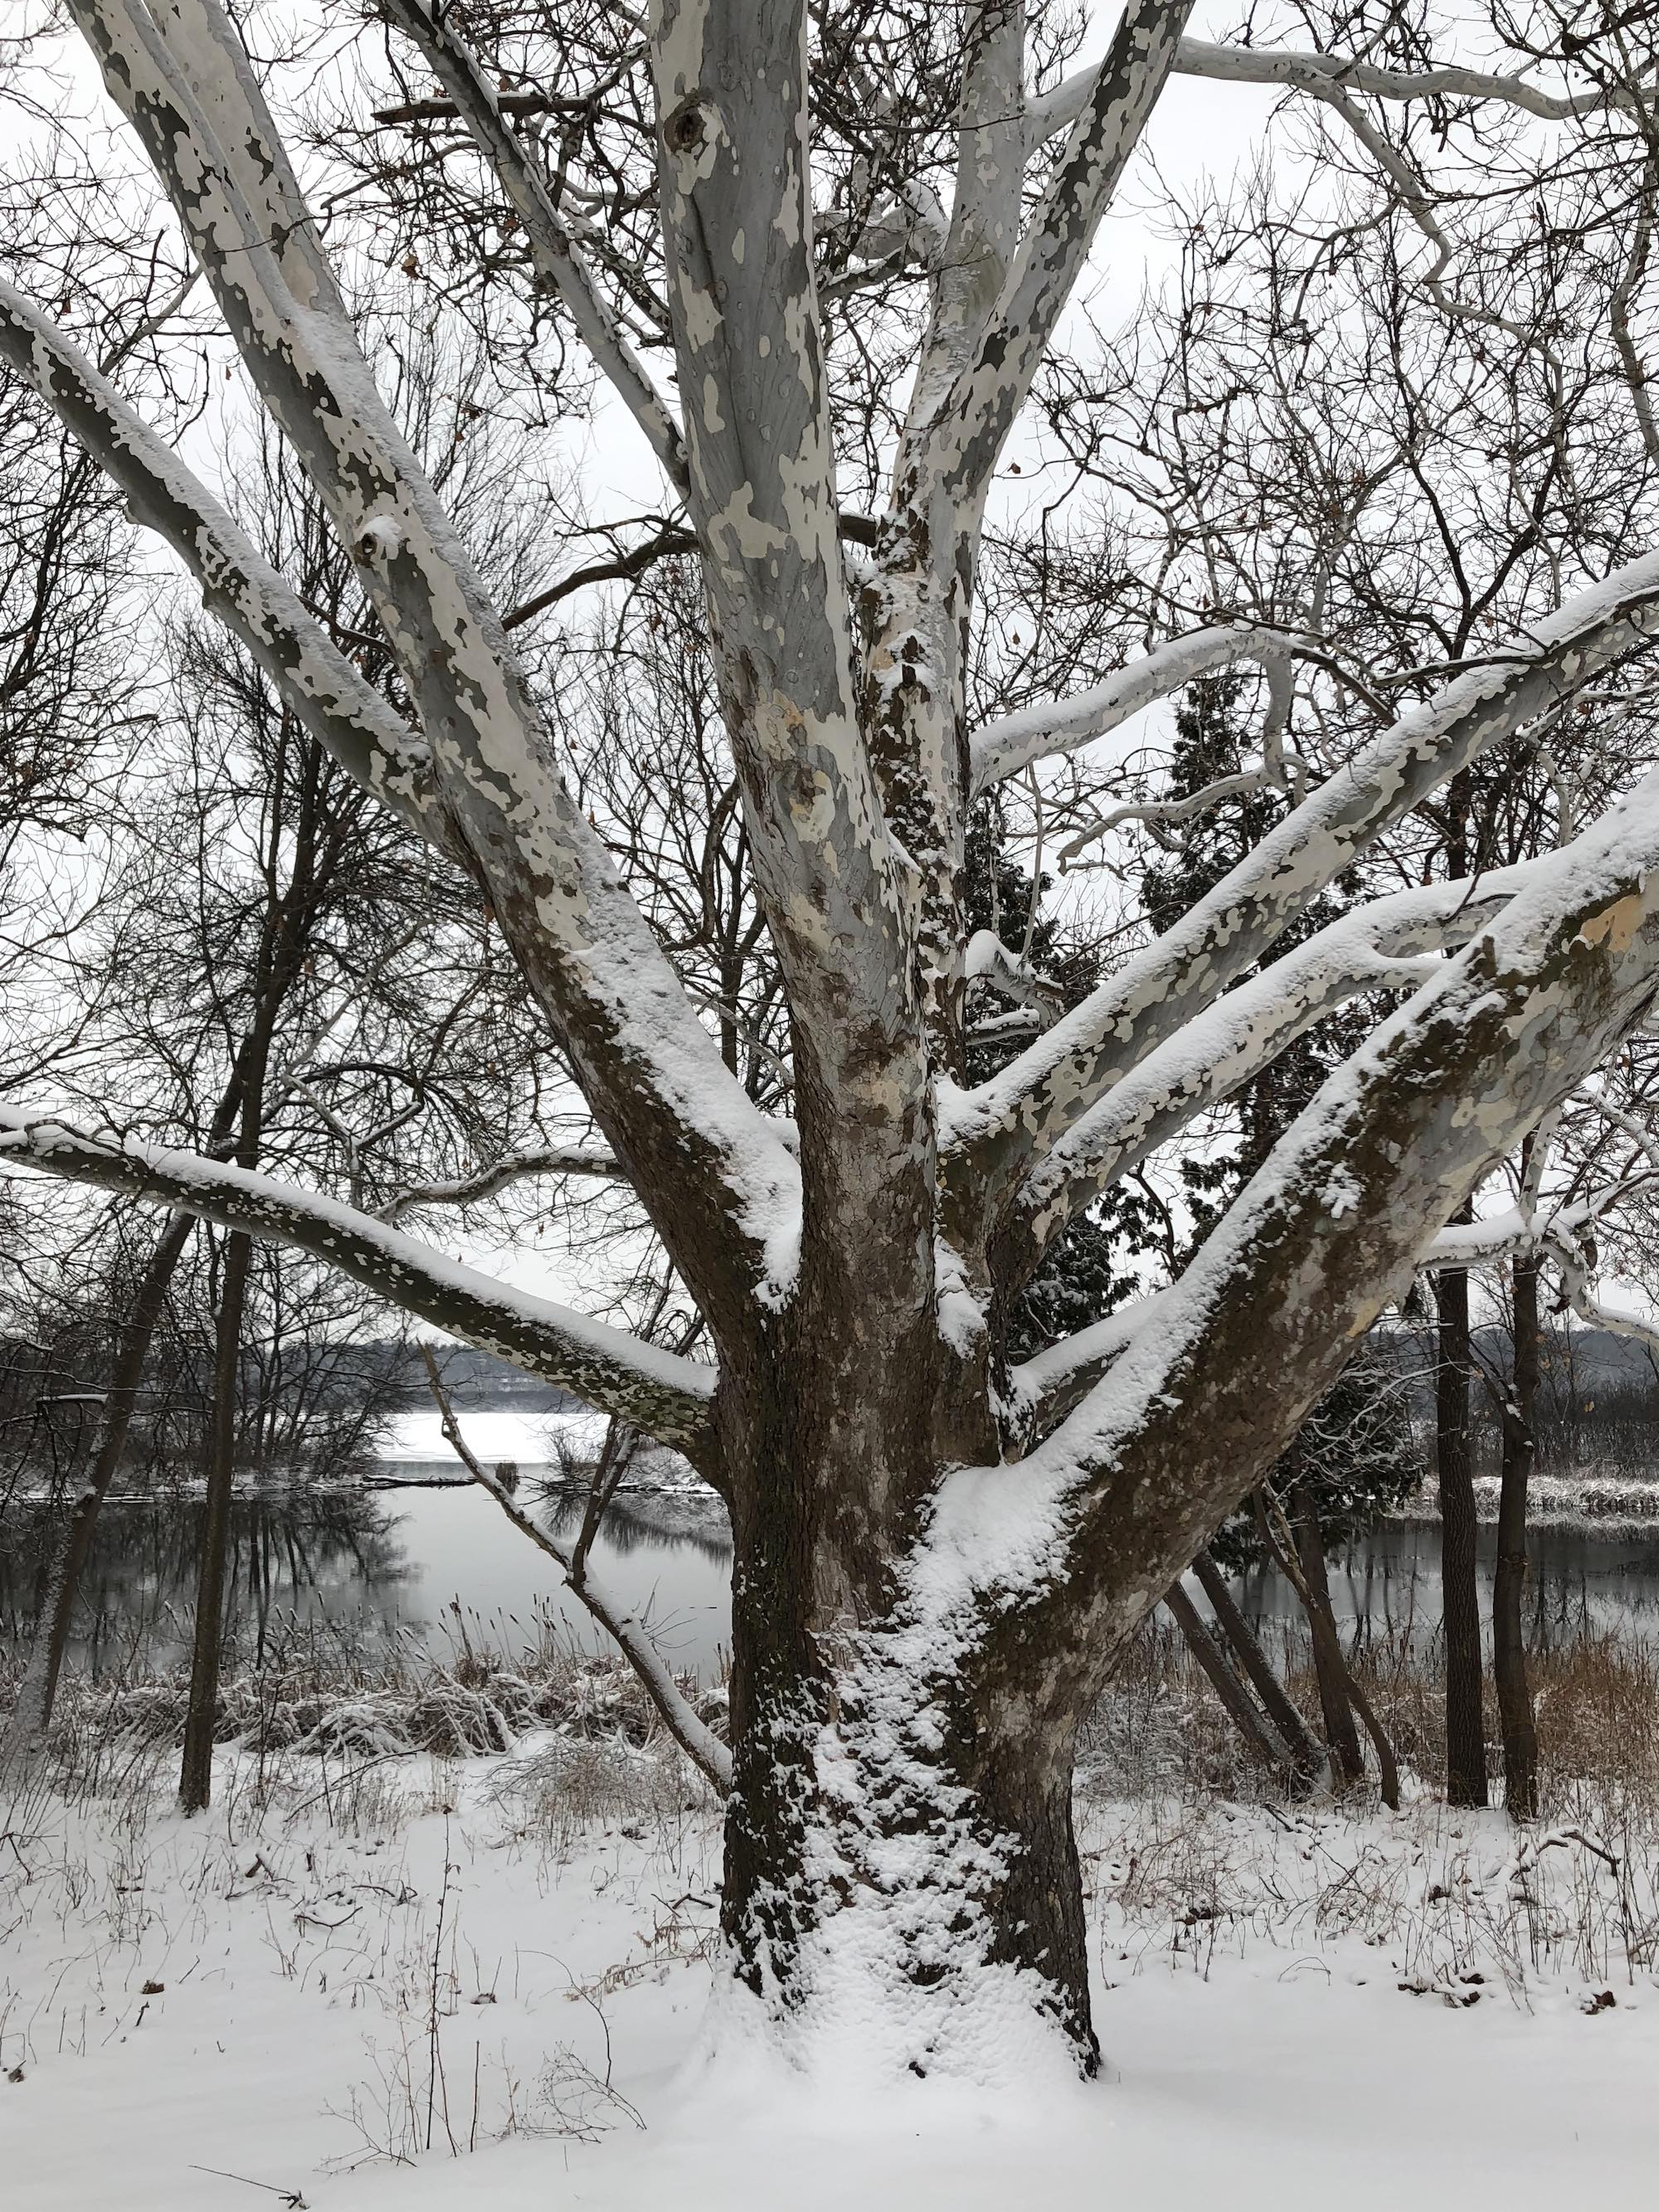 Sycamore tree between Ho-Nee-Um Pond and Arbor Drive on north shore of Lake Wingra on March 6, 2018.